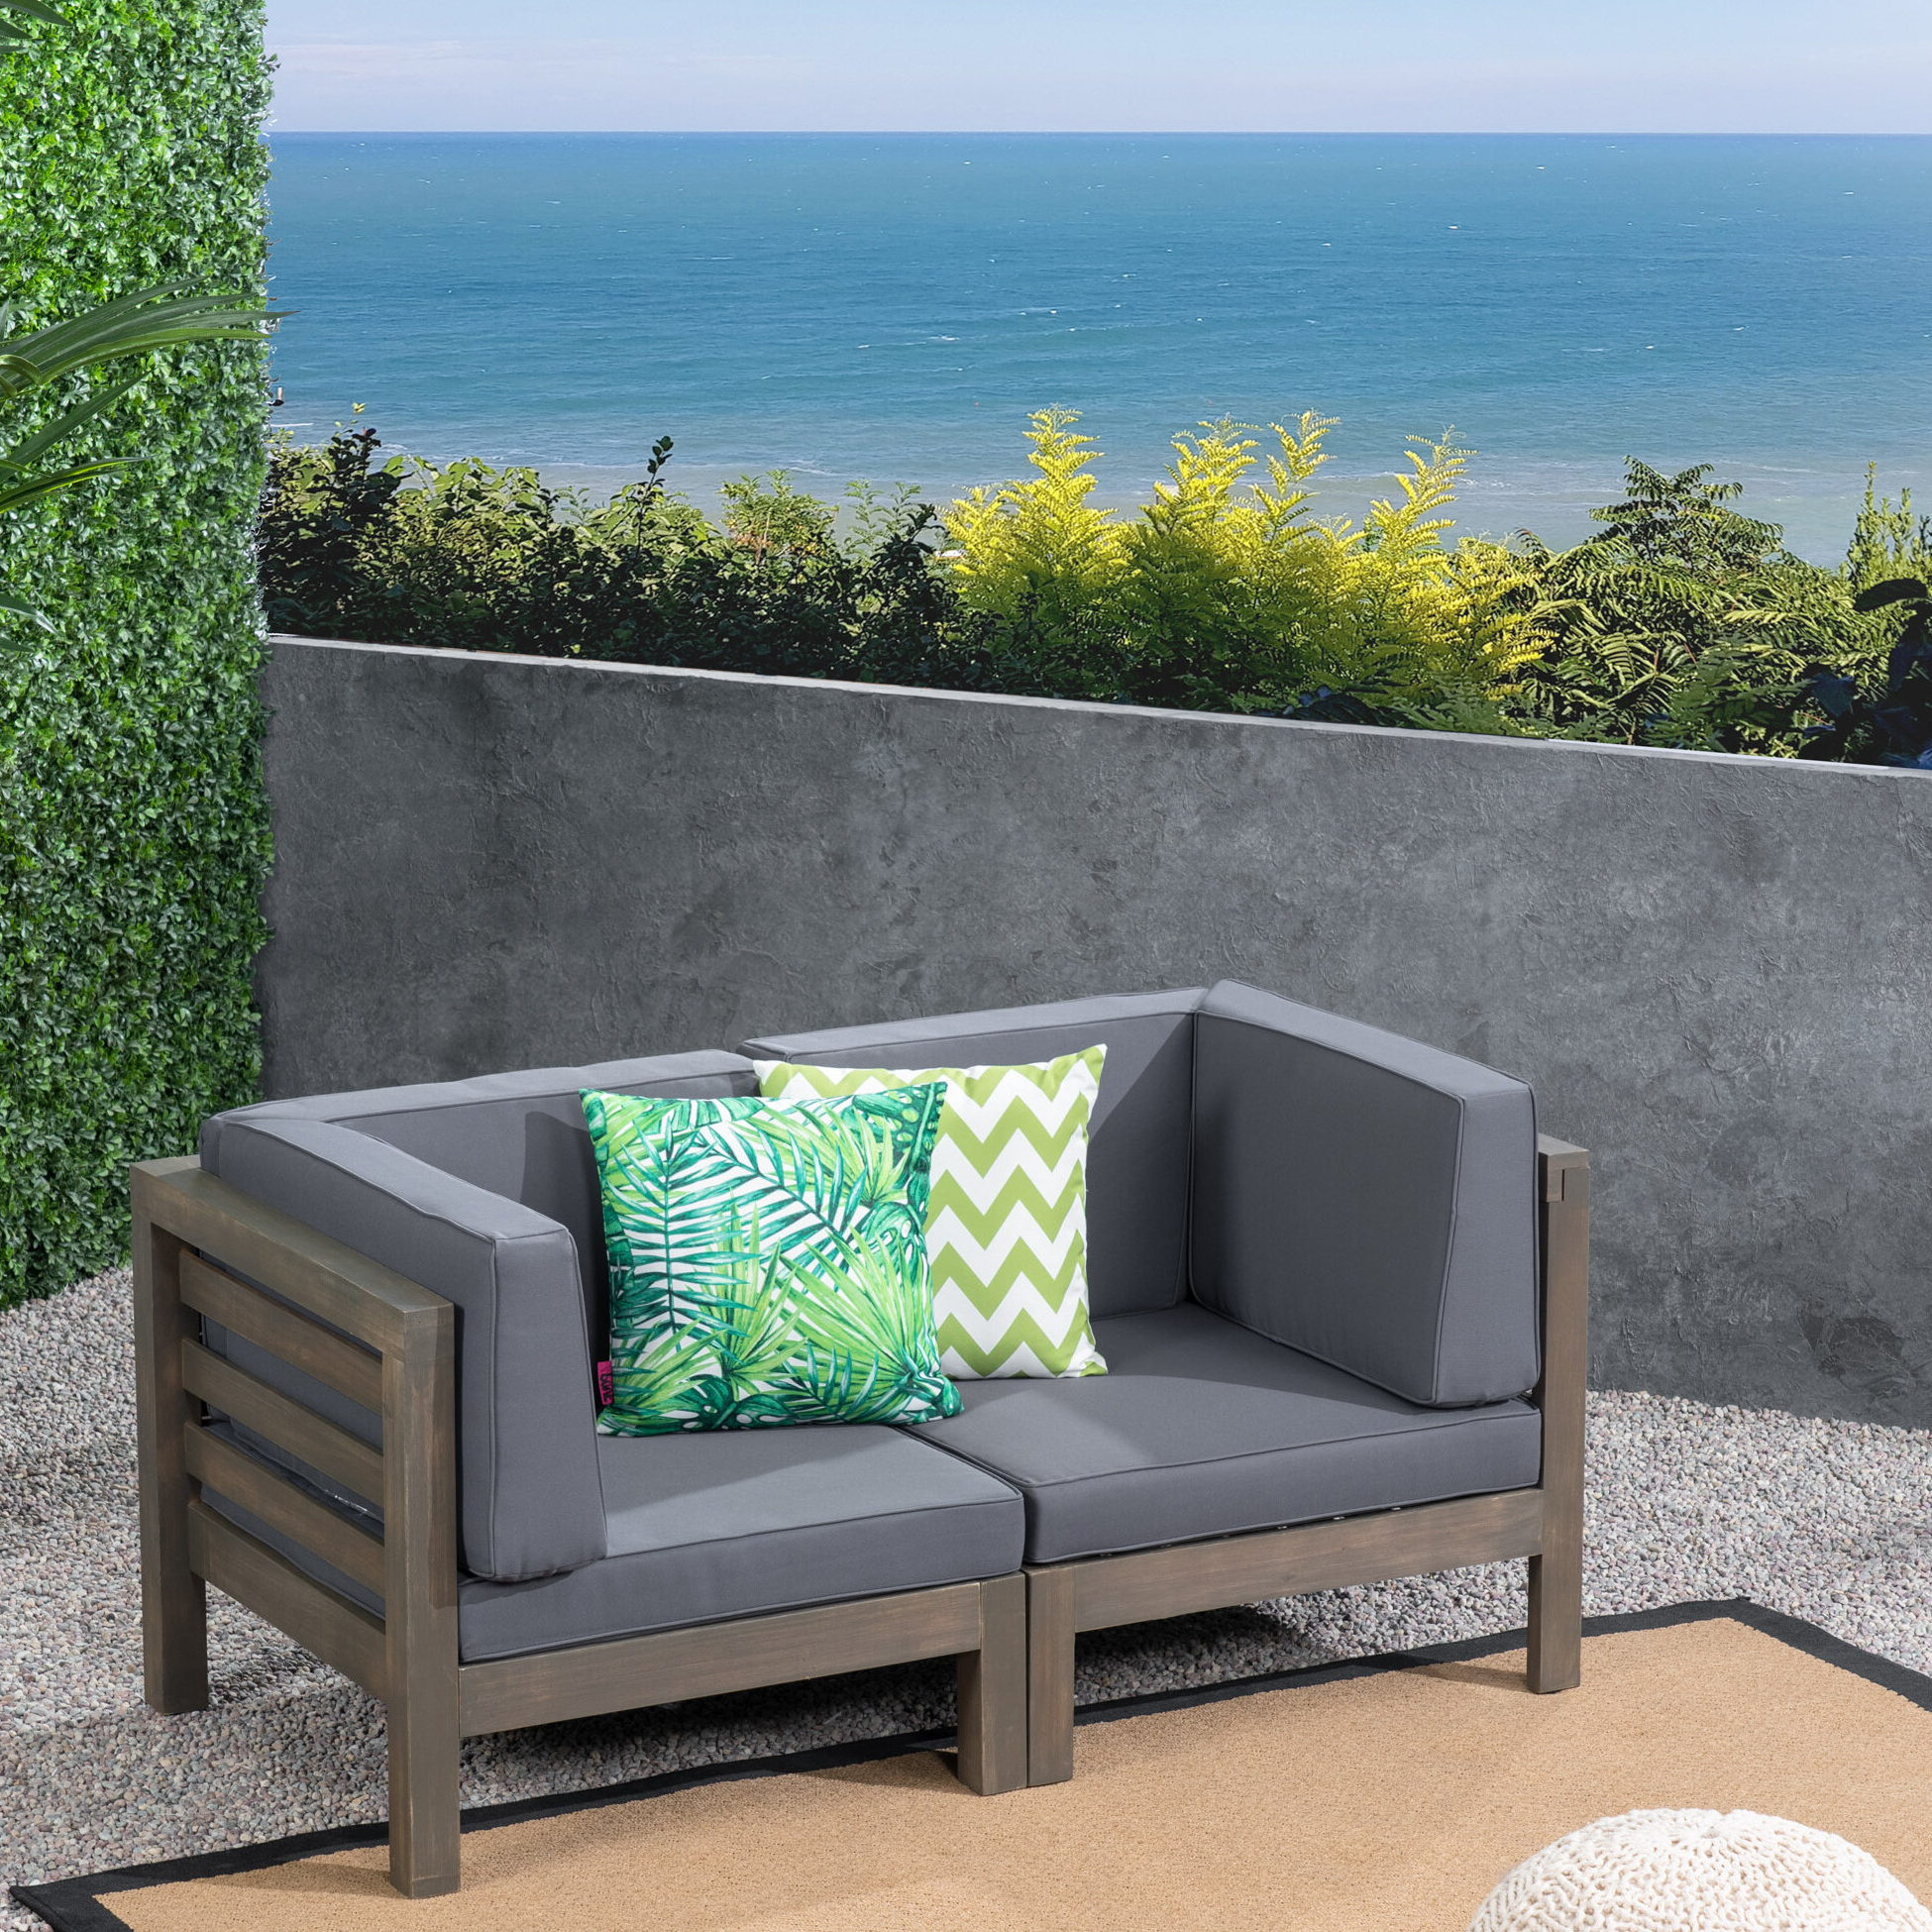 Seaham Loveseat With Cushions Intended For Fashionable Lyall Loveseats With Cushion (View 20 of 20)